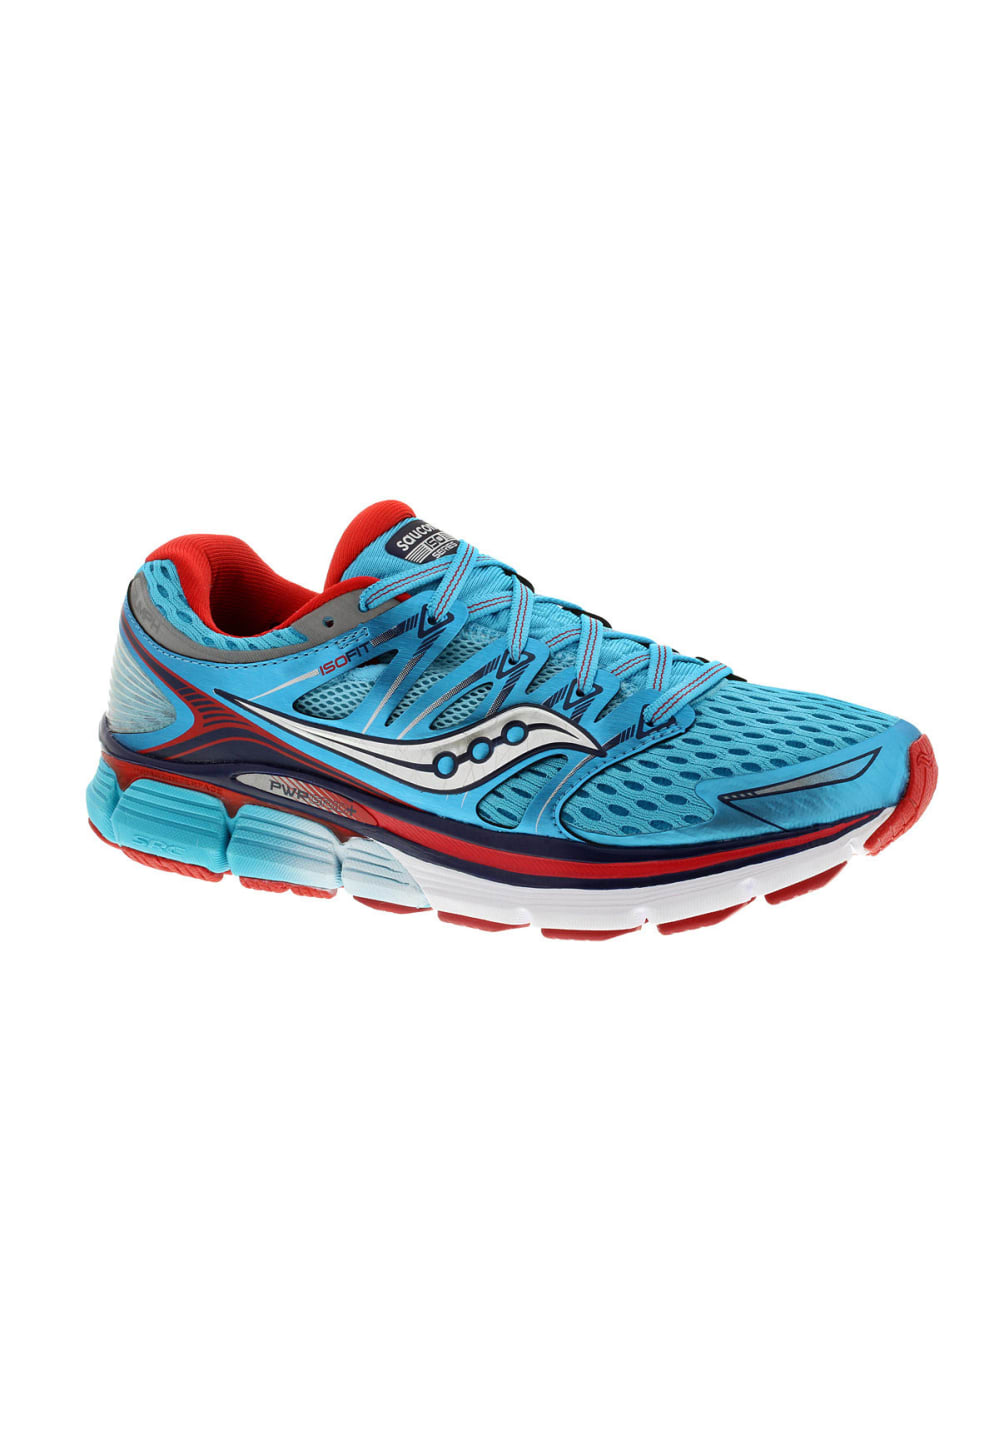 Saucony Triumph Iso Running Shoes For Women Blue